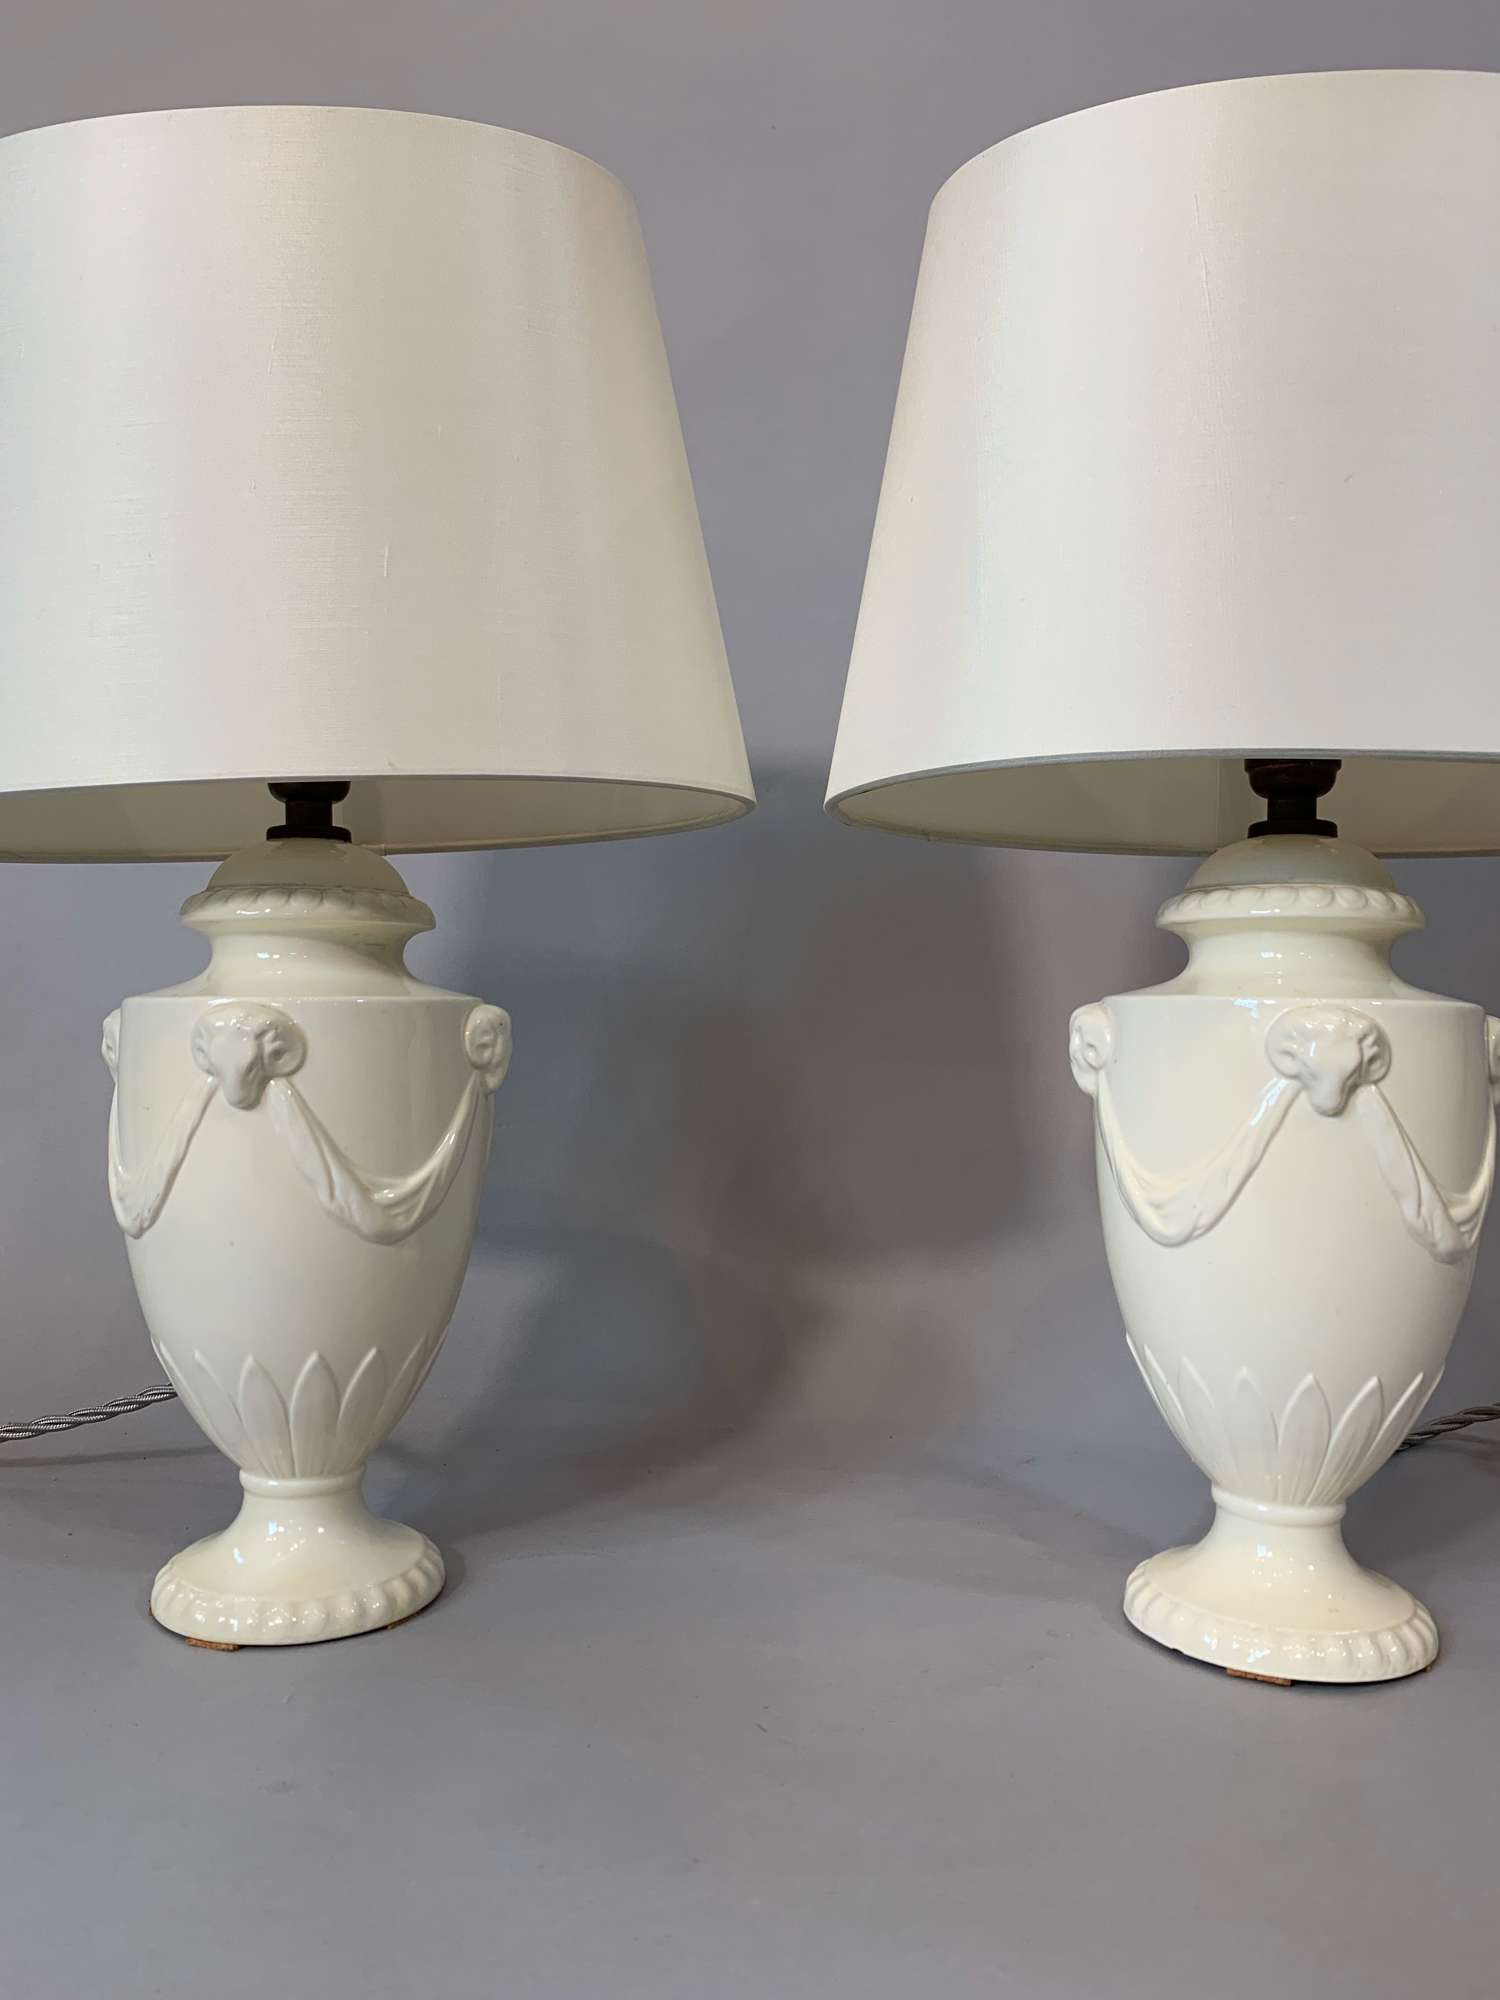 Wedgwood Etruria table lamps